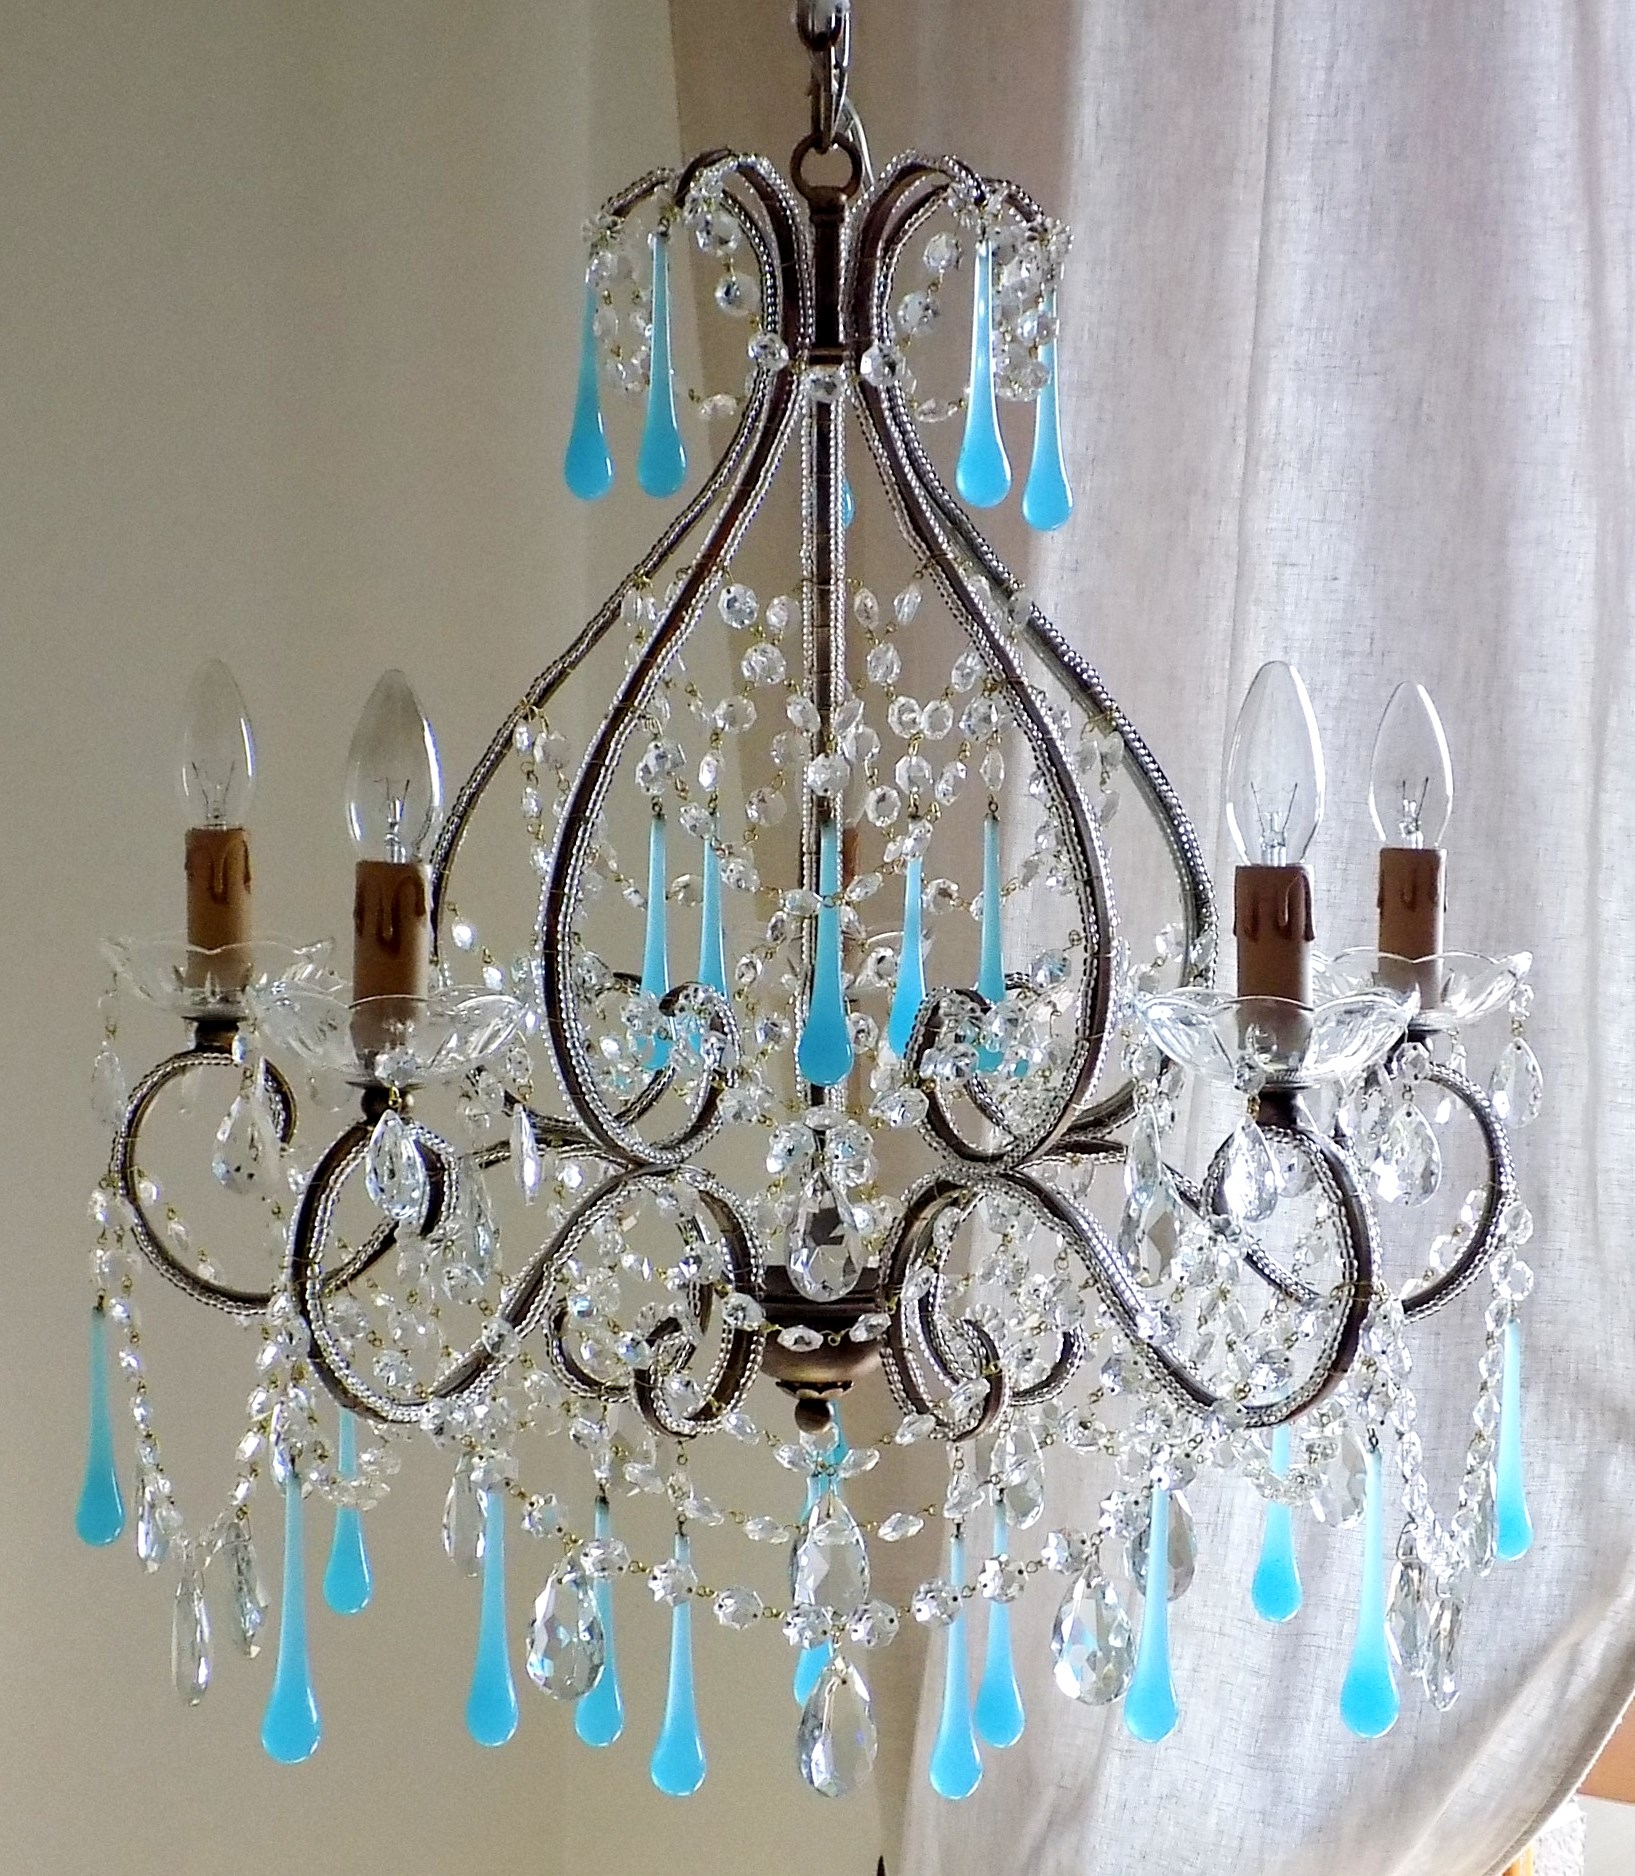 Italian Vintage 9 Arms Chandelier With Rare Shaped Crystals Pertaining To Turquoise Chandelier Crystals (Image 16 of 25)